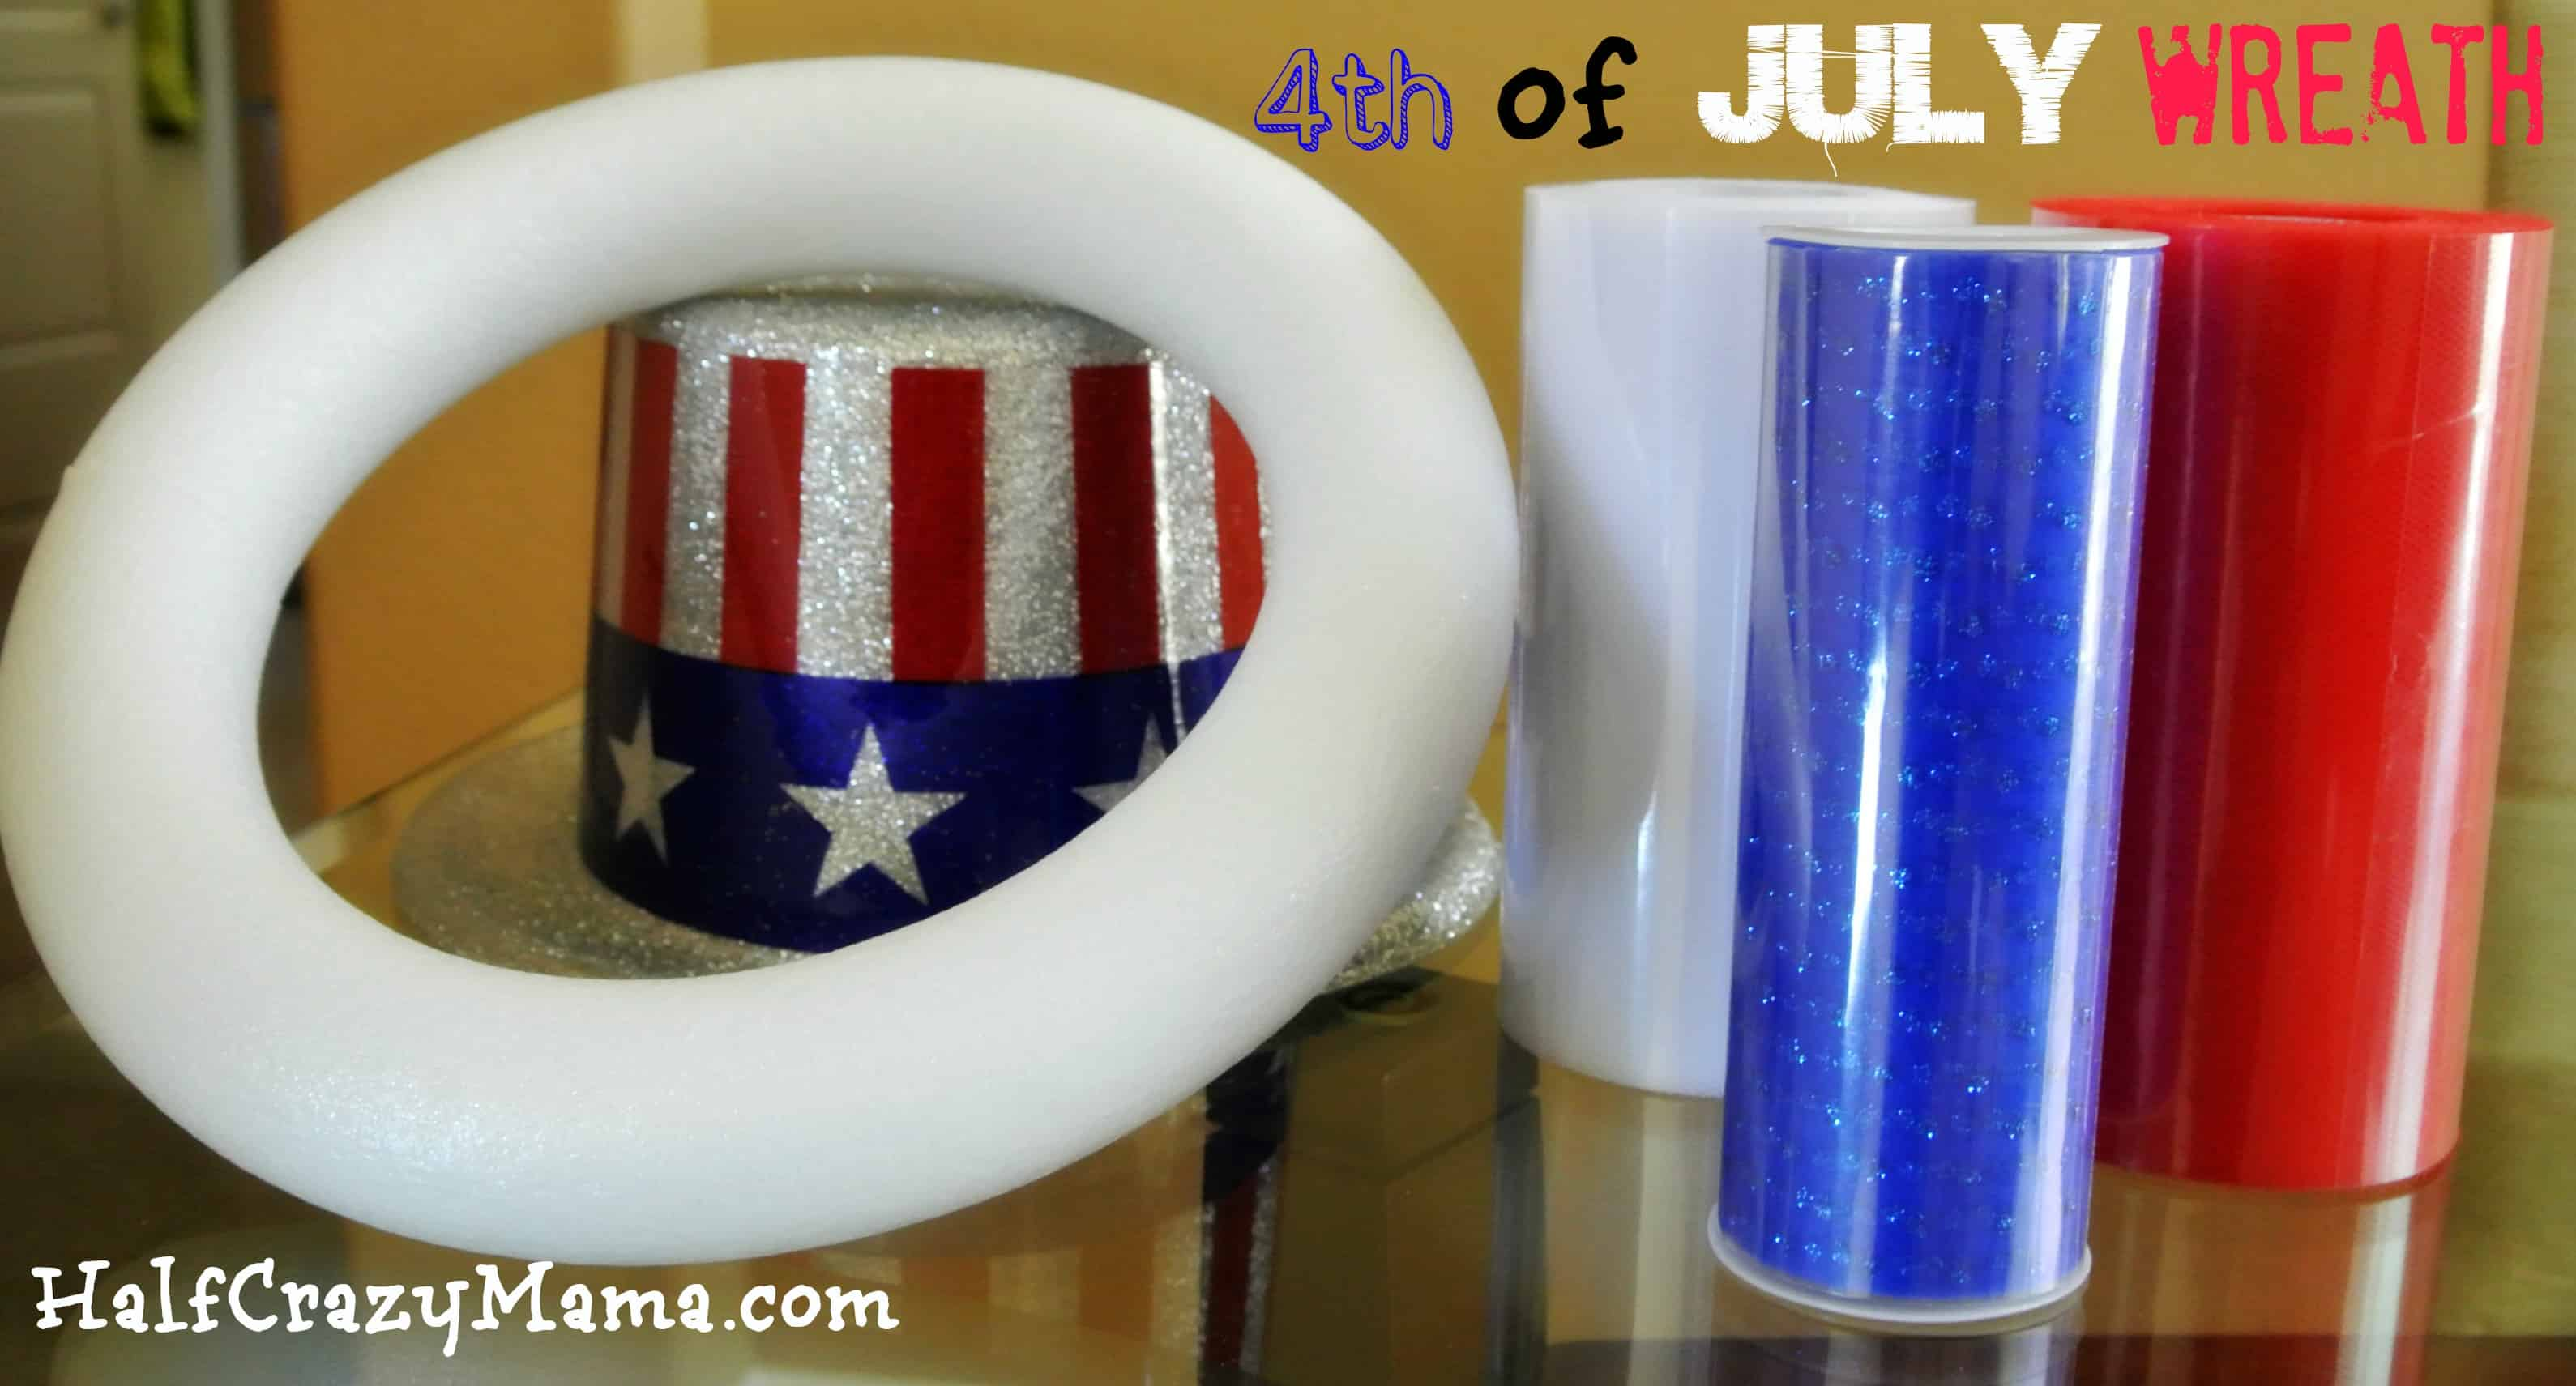 4th july wreathe pieces